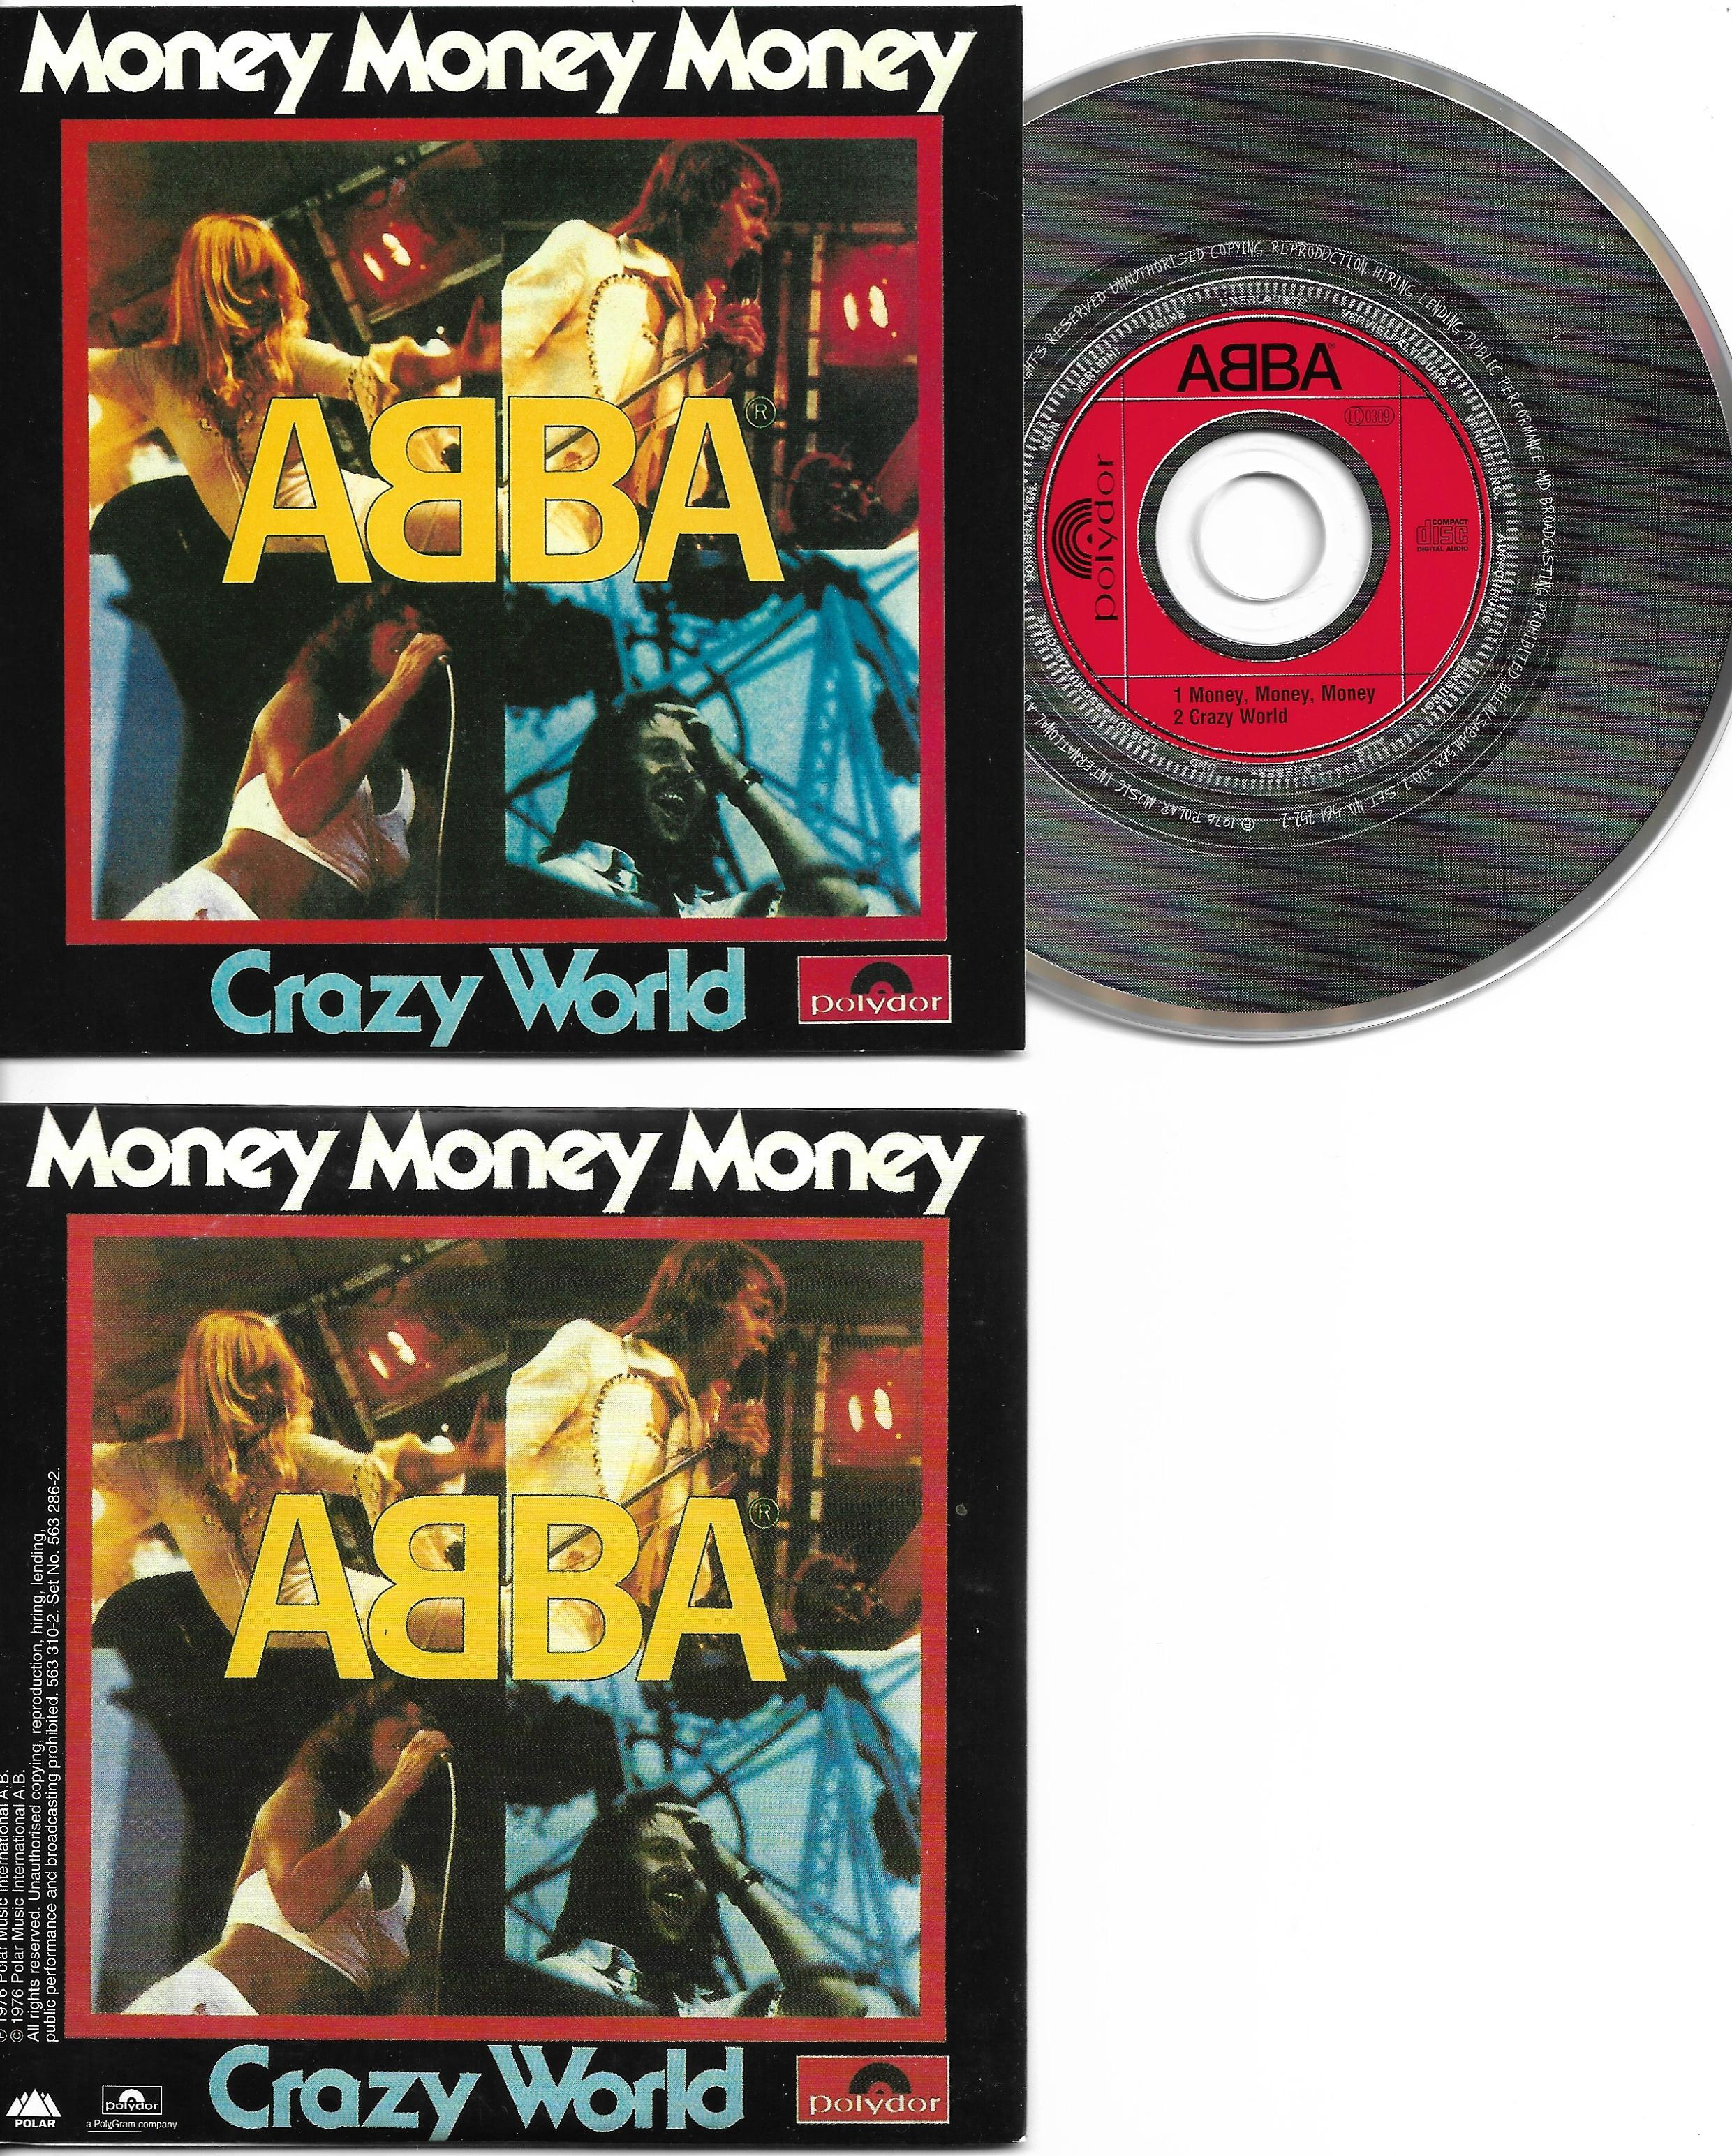 ABBA - Money Money Money - That's Me 2-track Card Sleeve